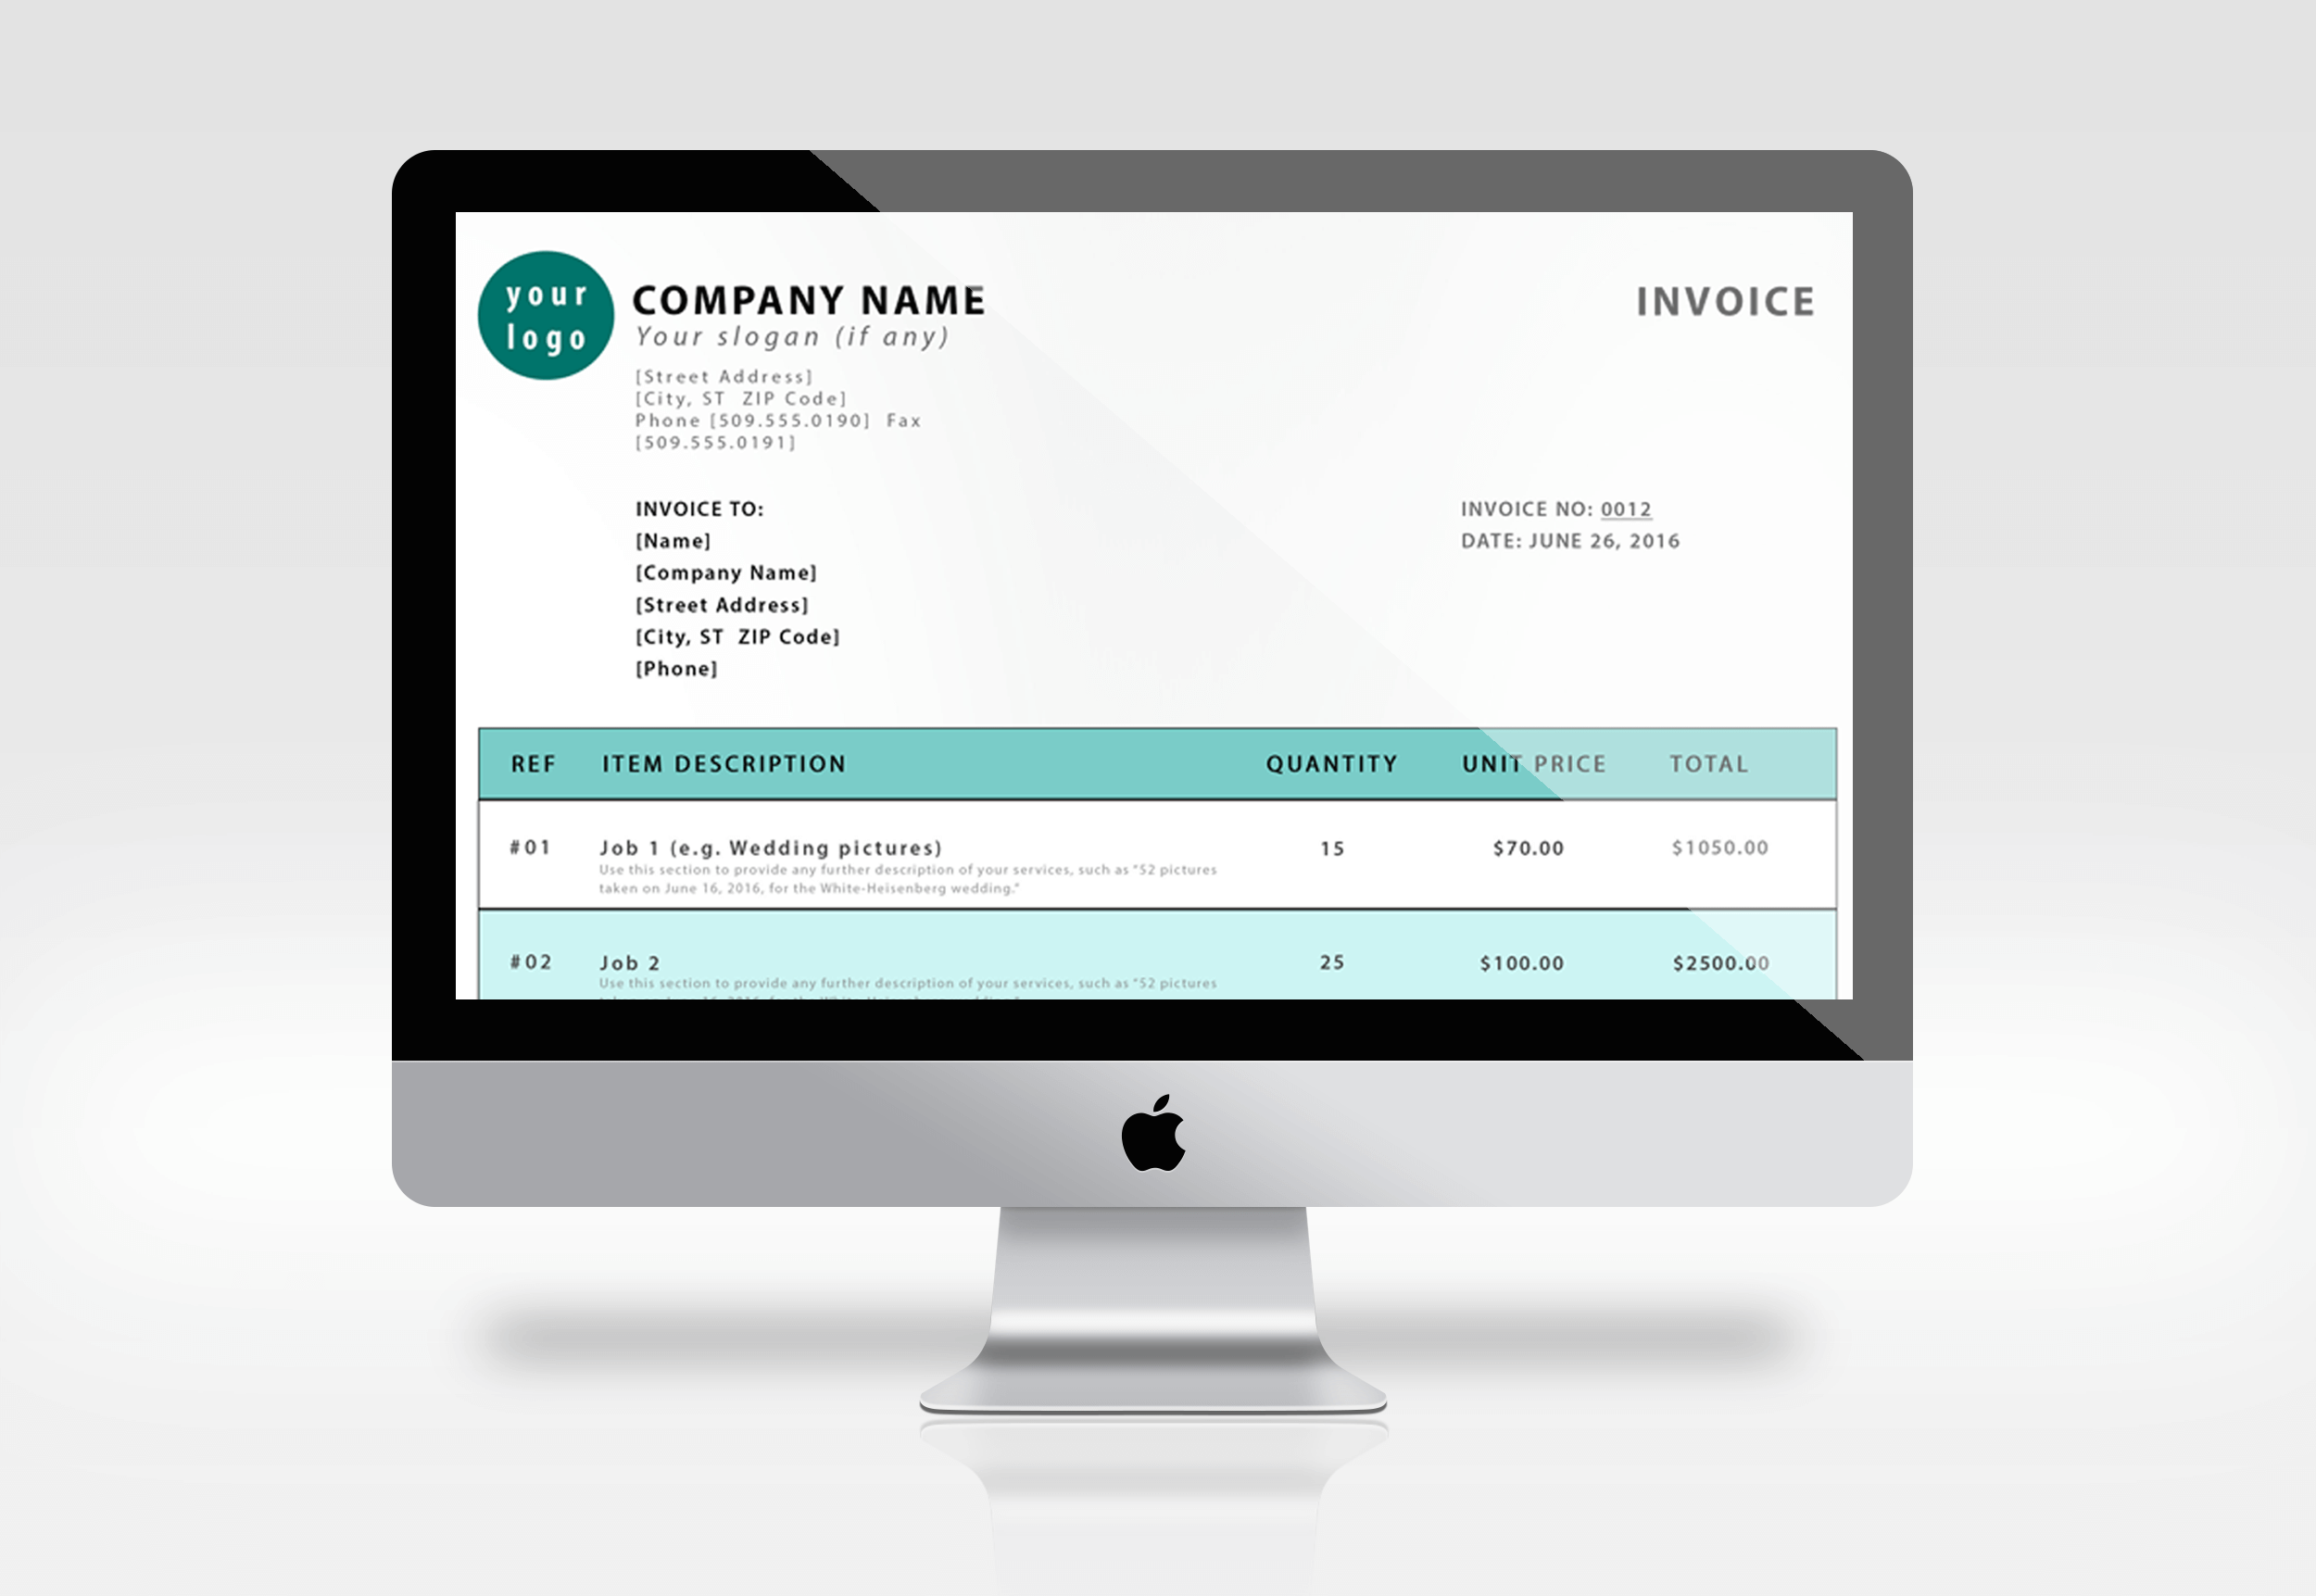 You can use our Sphere Tech free PSD invoice template on your laptop, tablet or computer